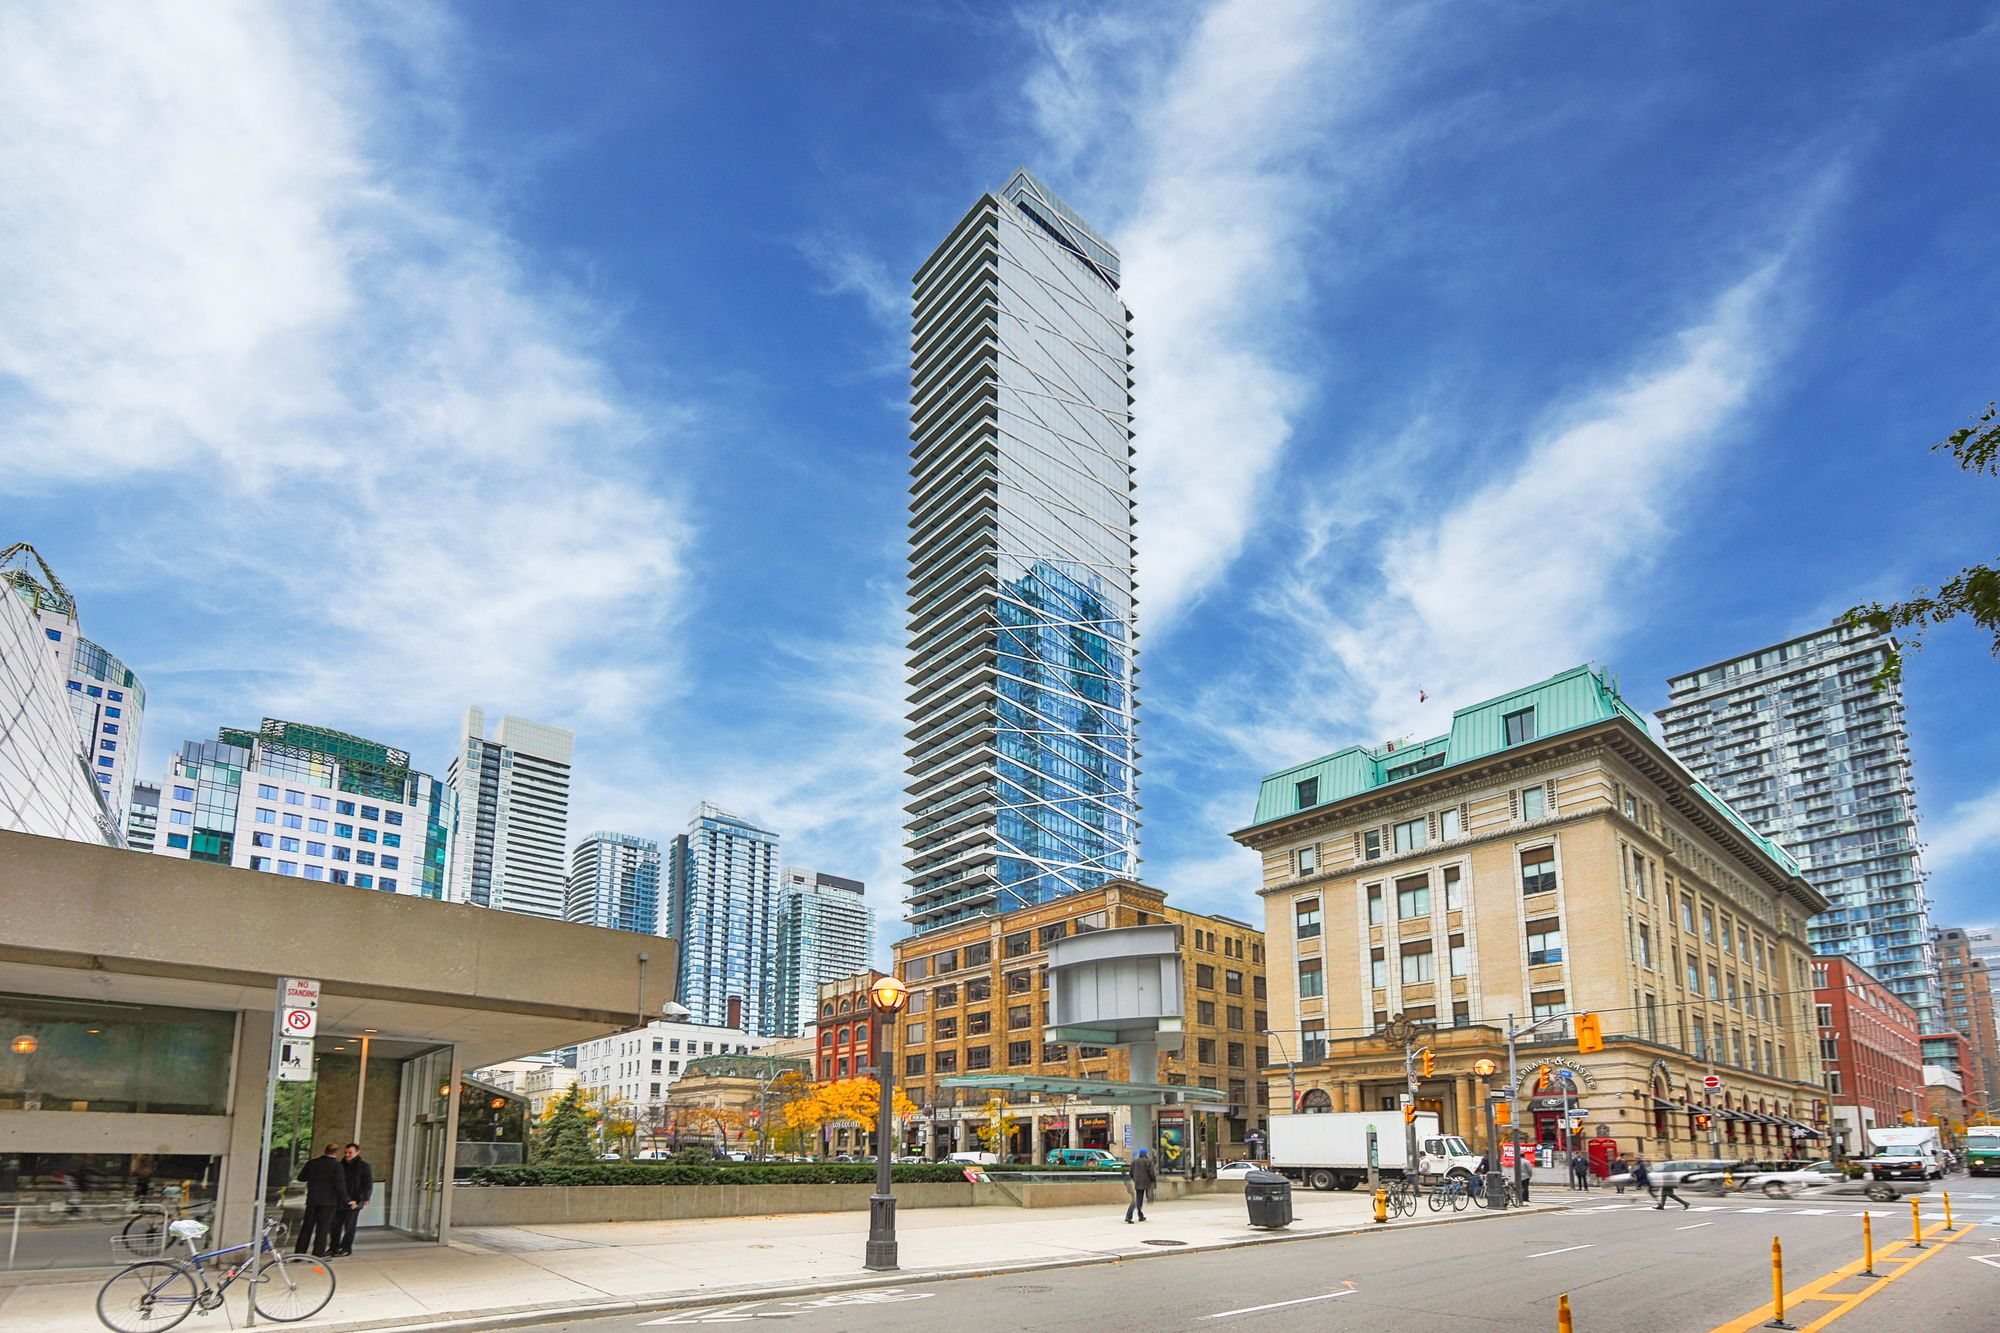 224 King St W. This condo at Theatre Park is located in  Downtown, Toronto - image #1 of 5 by Strata.ca